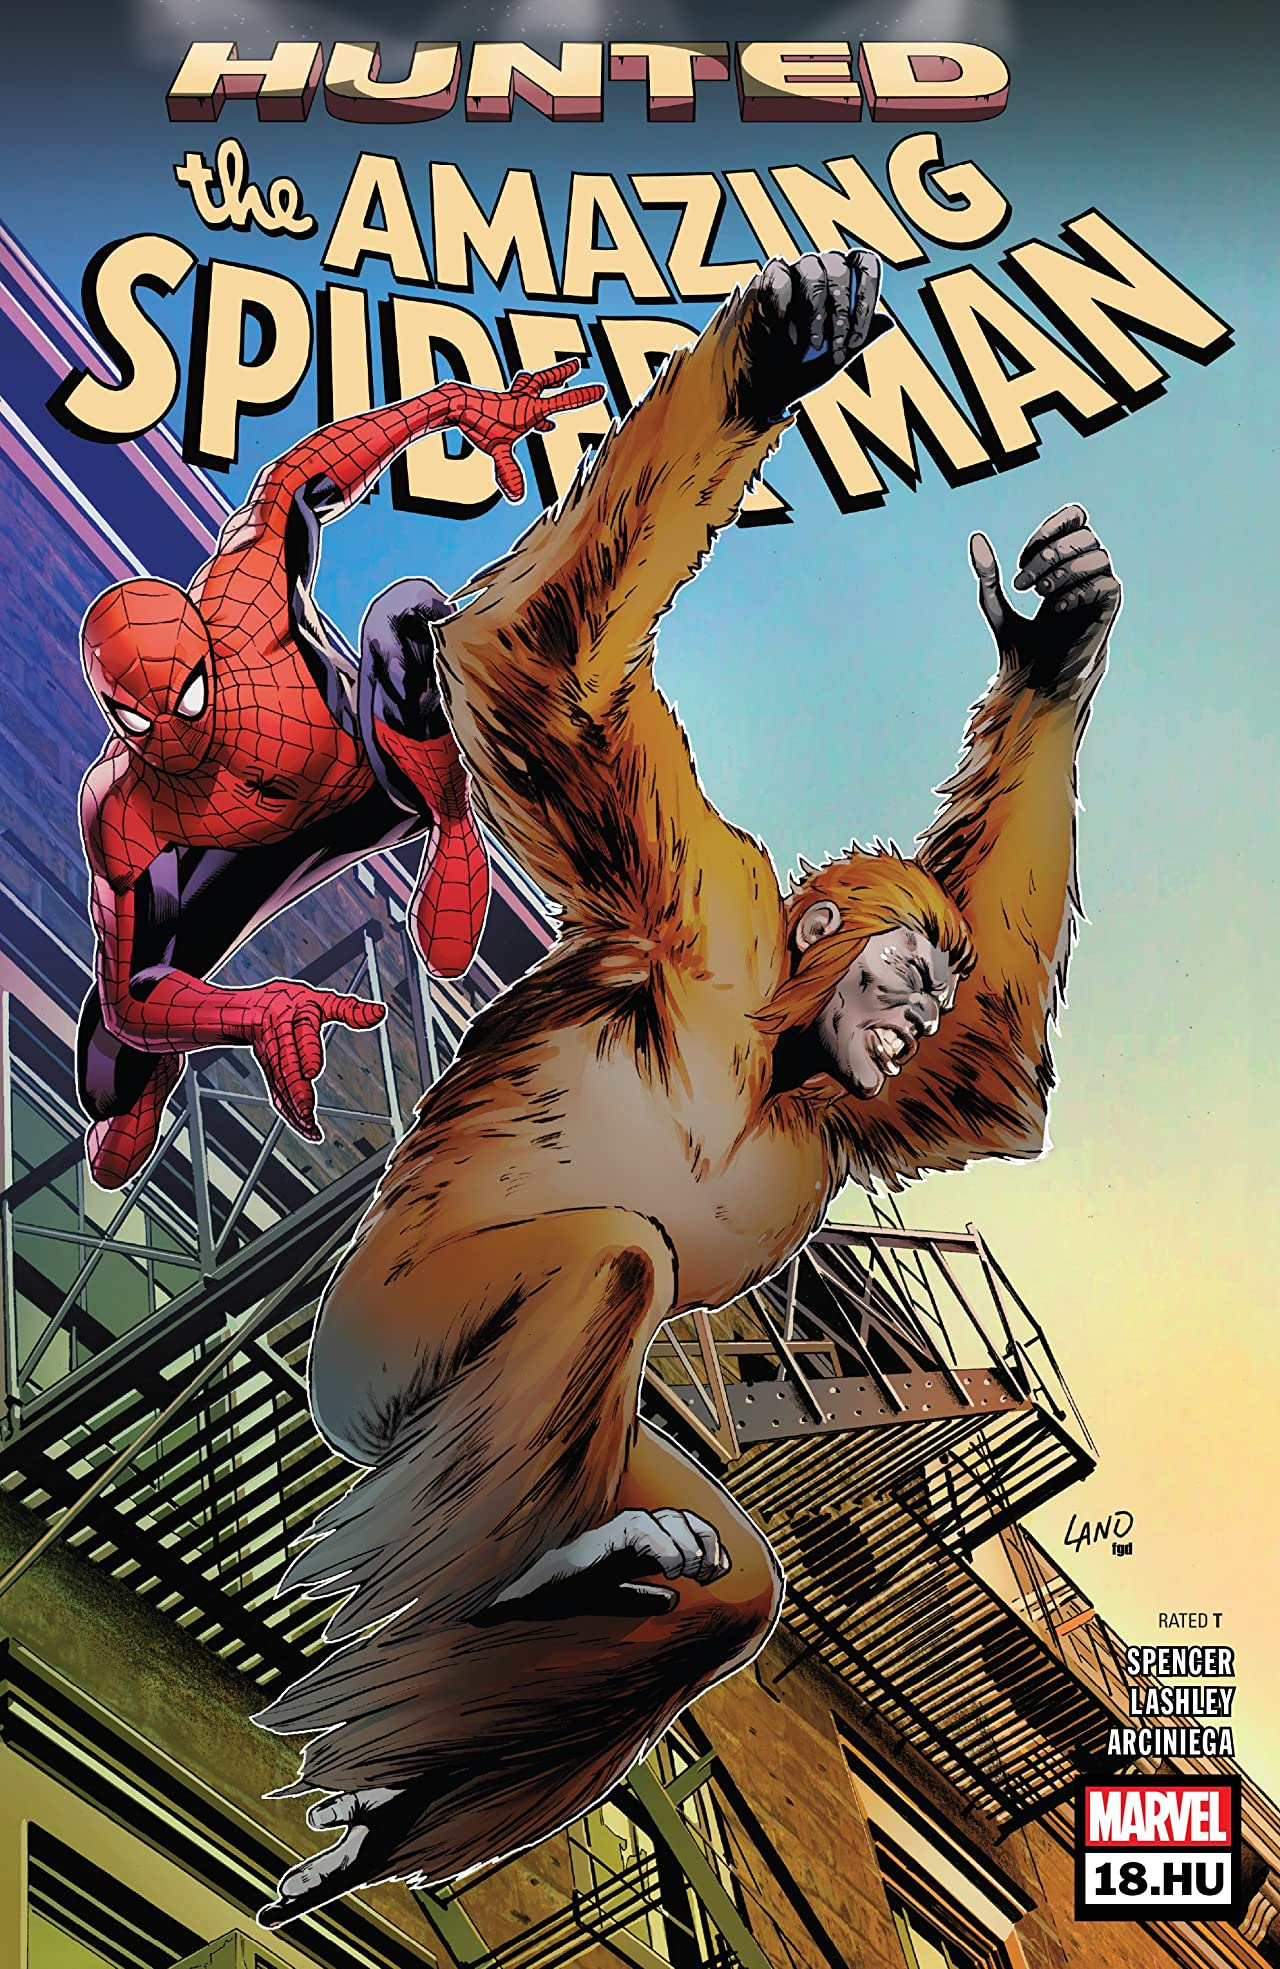 Amazing Spider-Man (2018-) No.18.HU